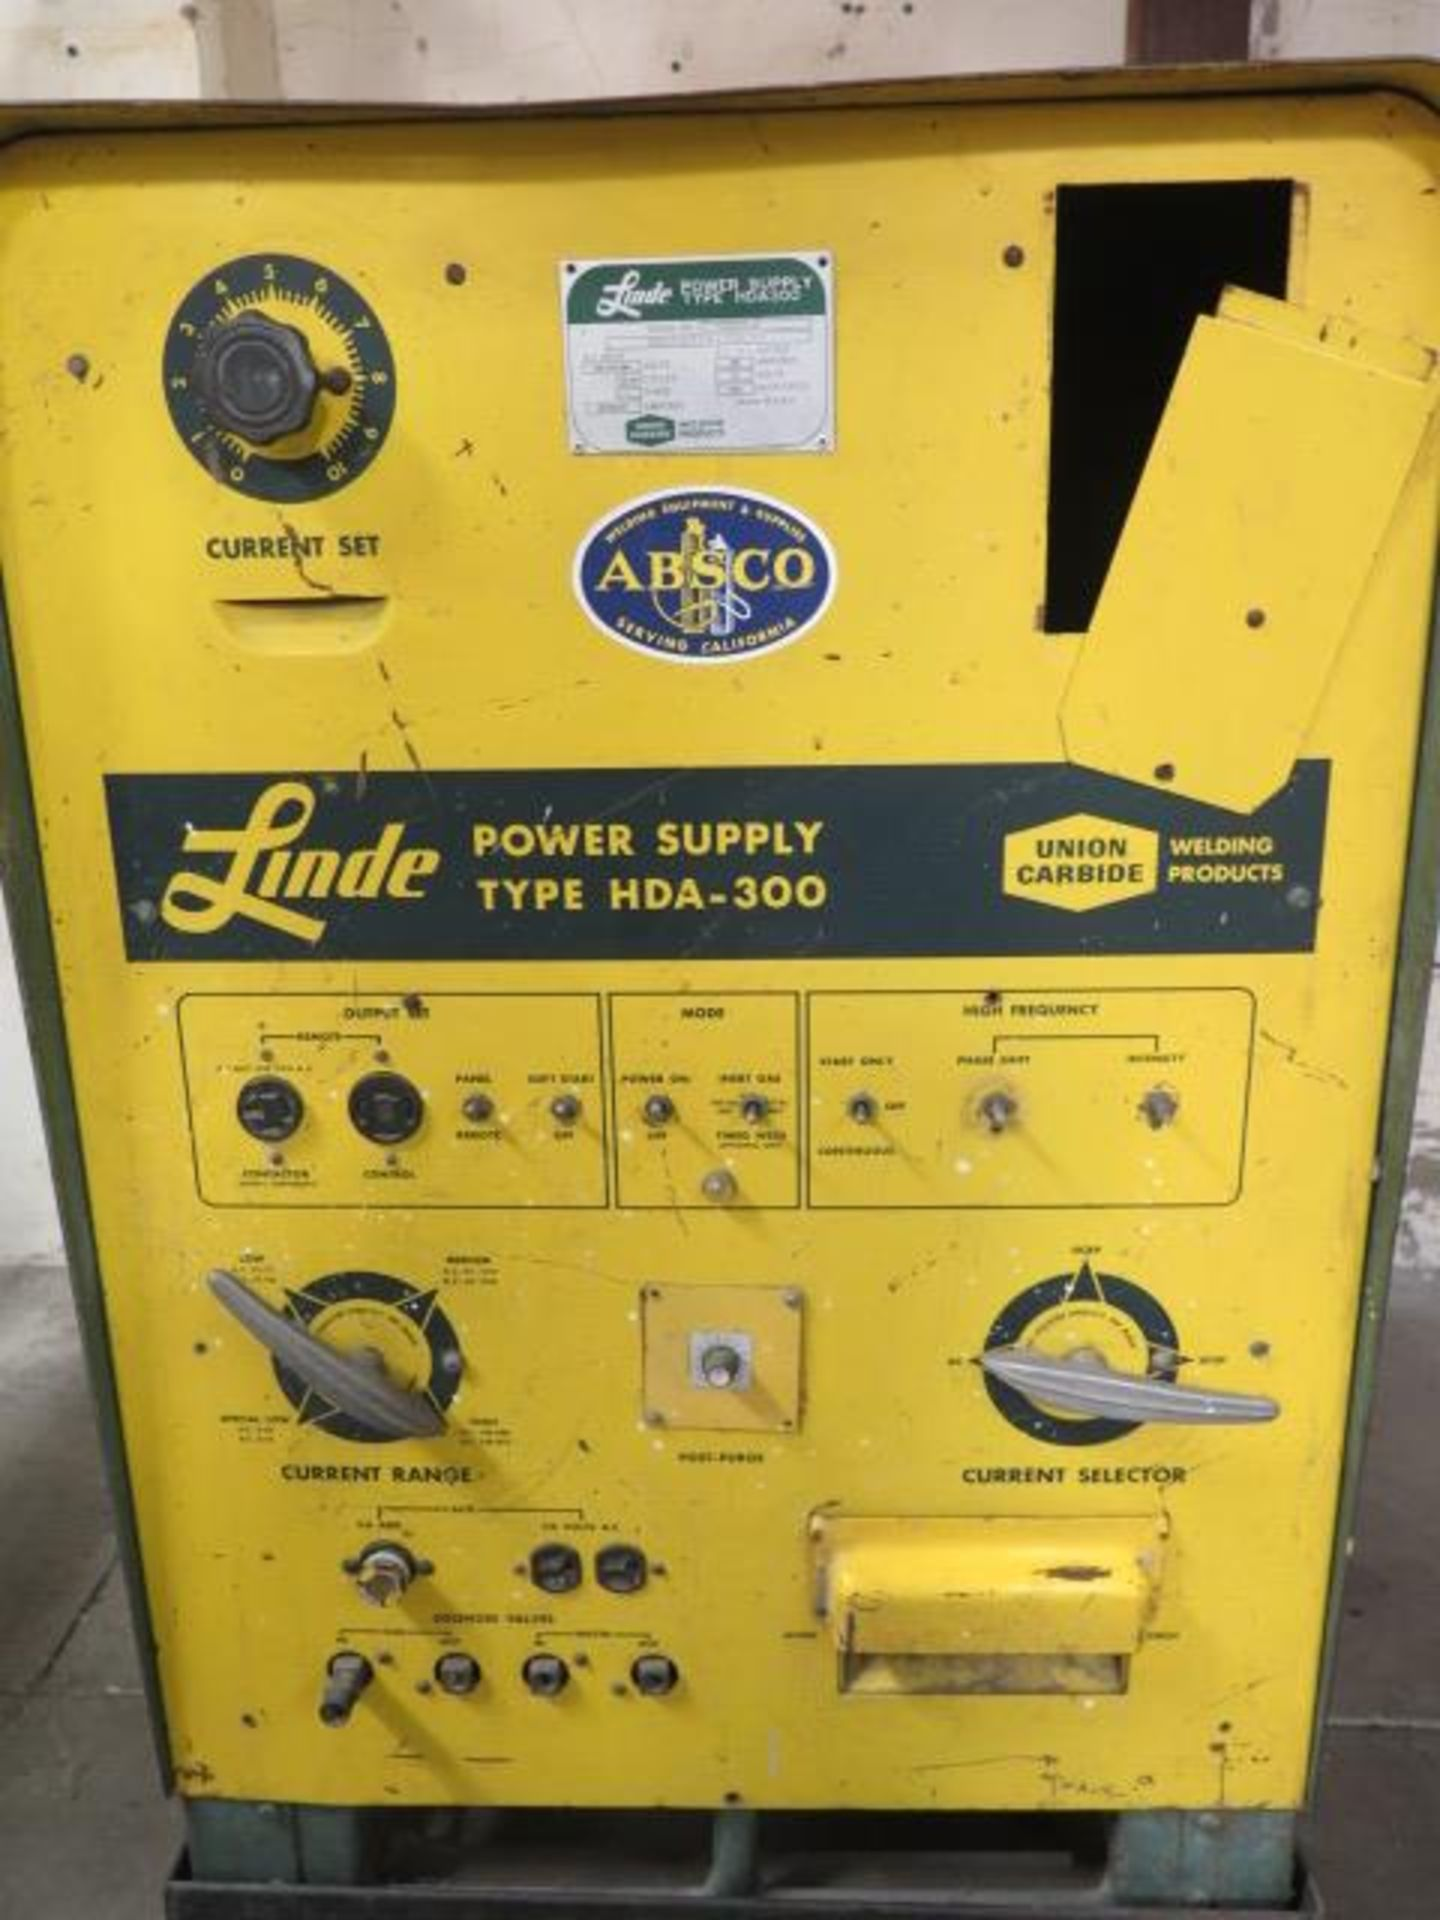 Linde HAD-300 AC/DC Arc Welding Power Source s/n C-3660800 (SOLD AS-IS - NO WARRANTY) - Image 3 of 5